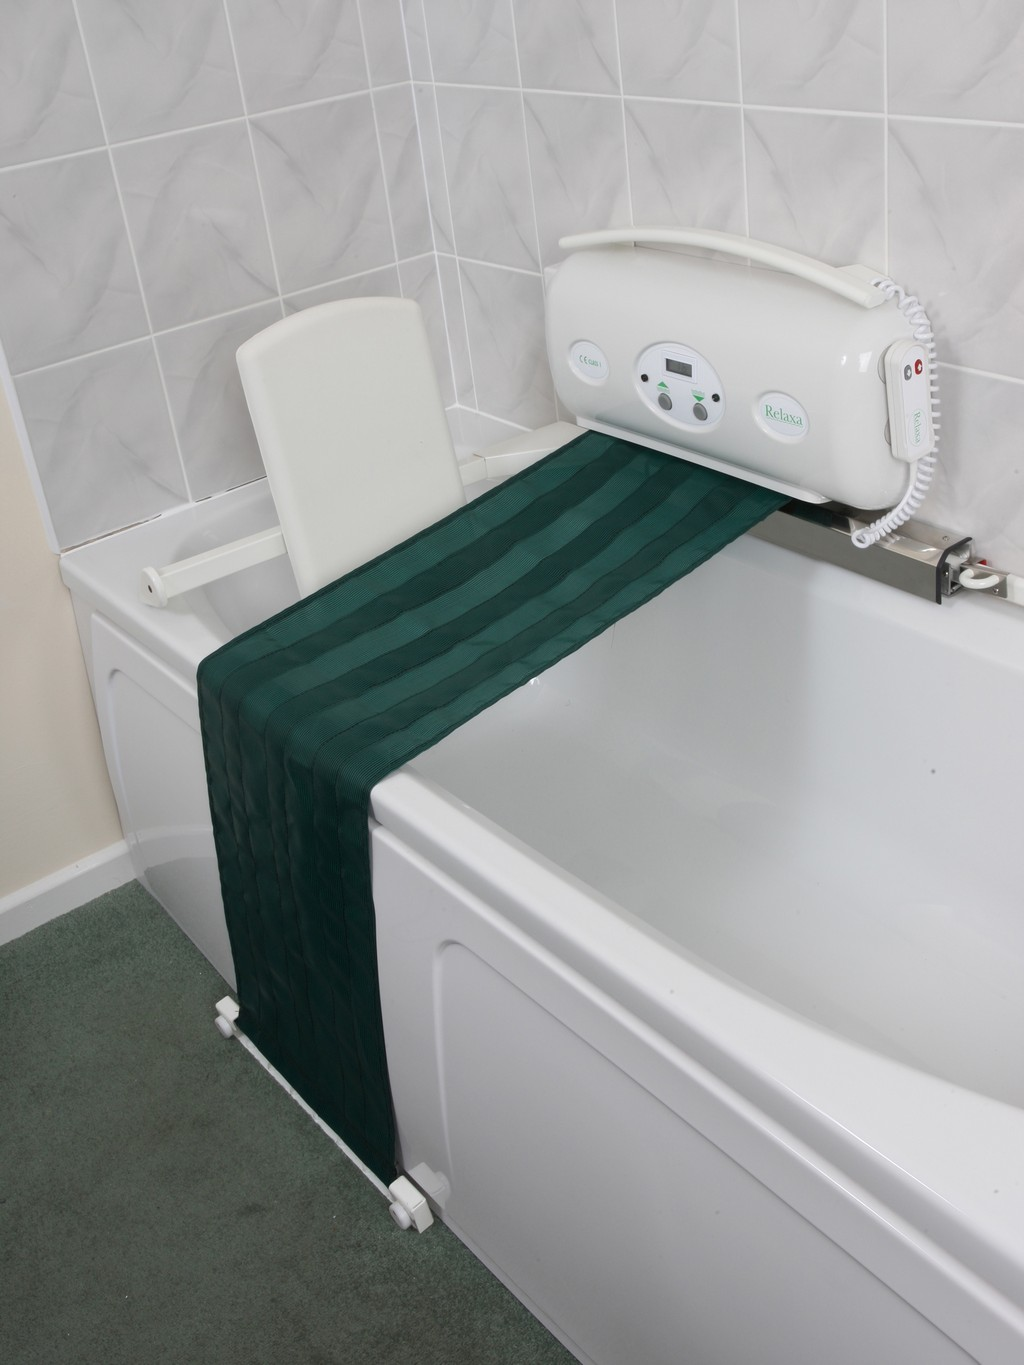 Wheelchair Assistance | Aqua bath lift